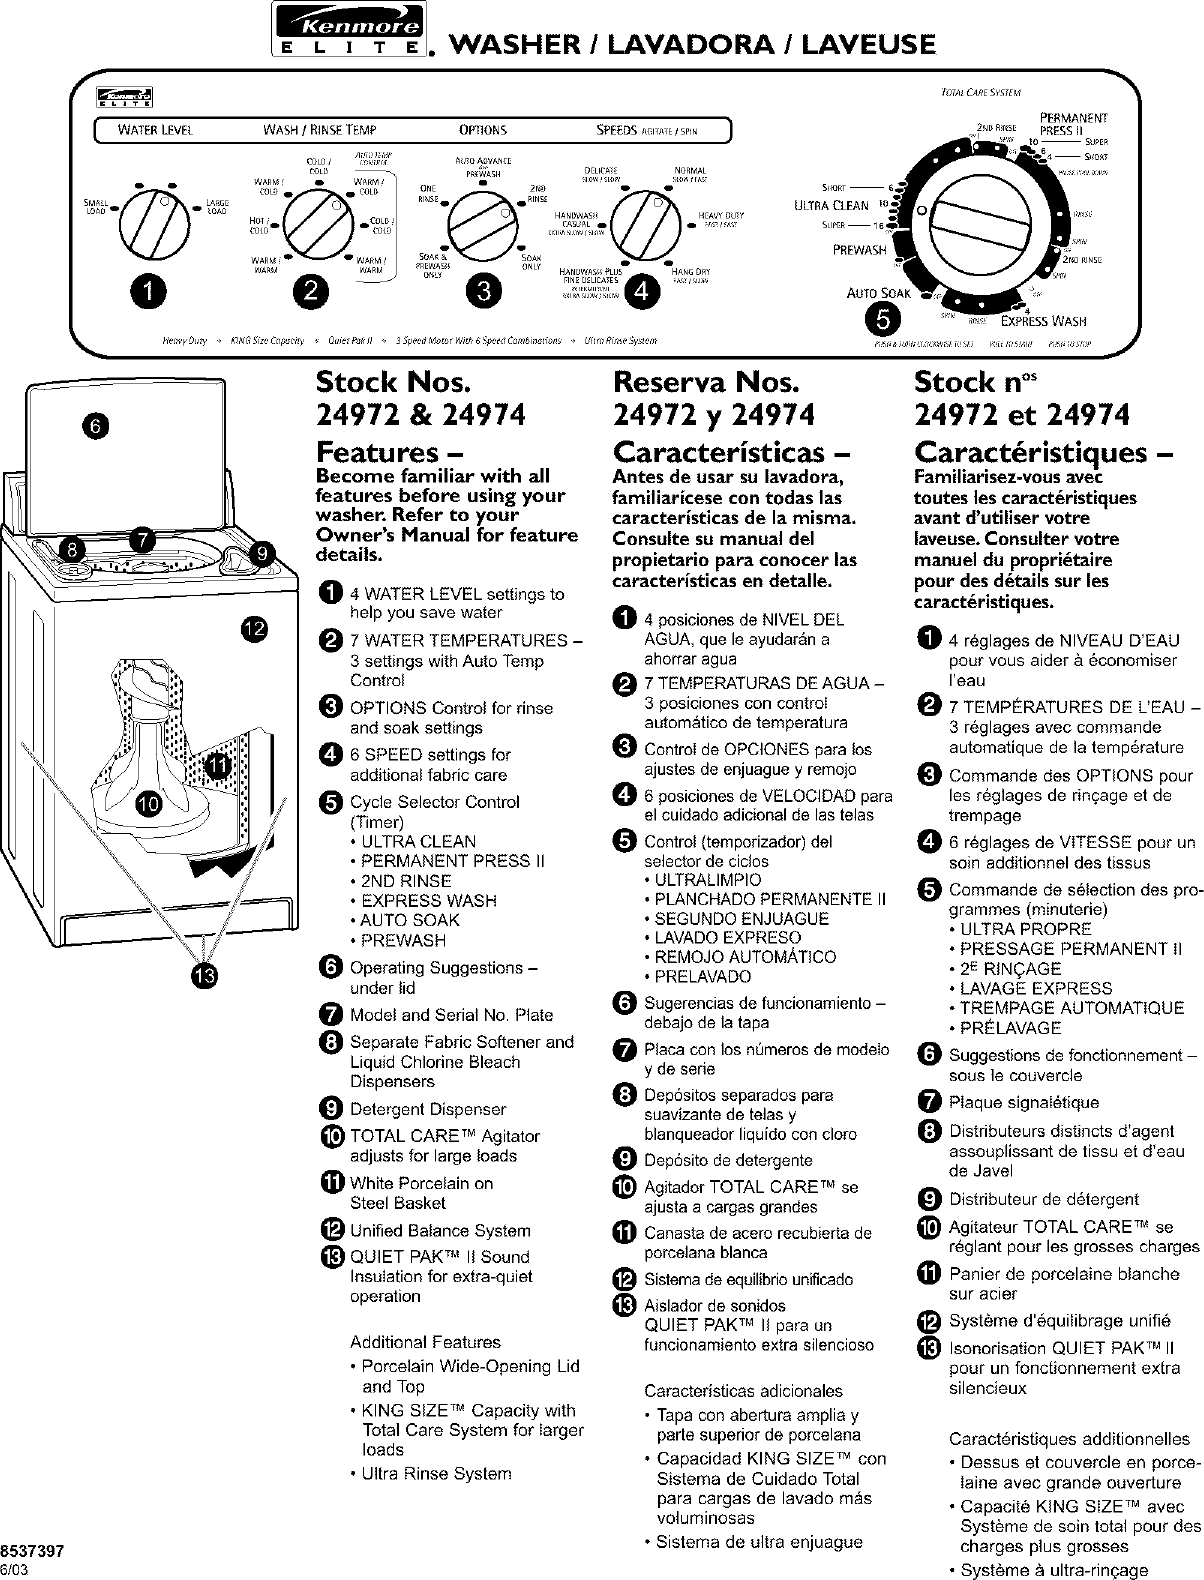 Kenmore Kenmore Automatic Washer Parts Manual Guide